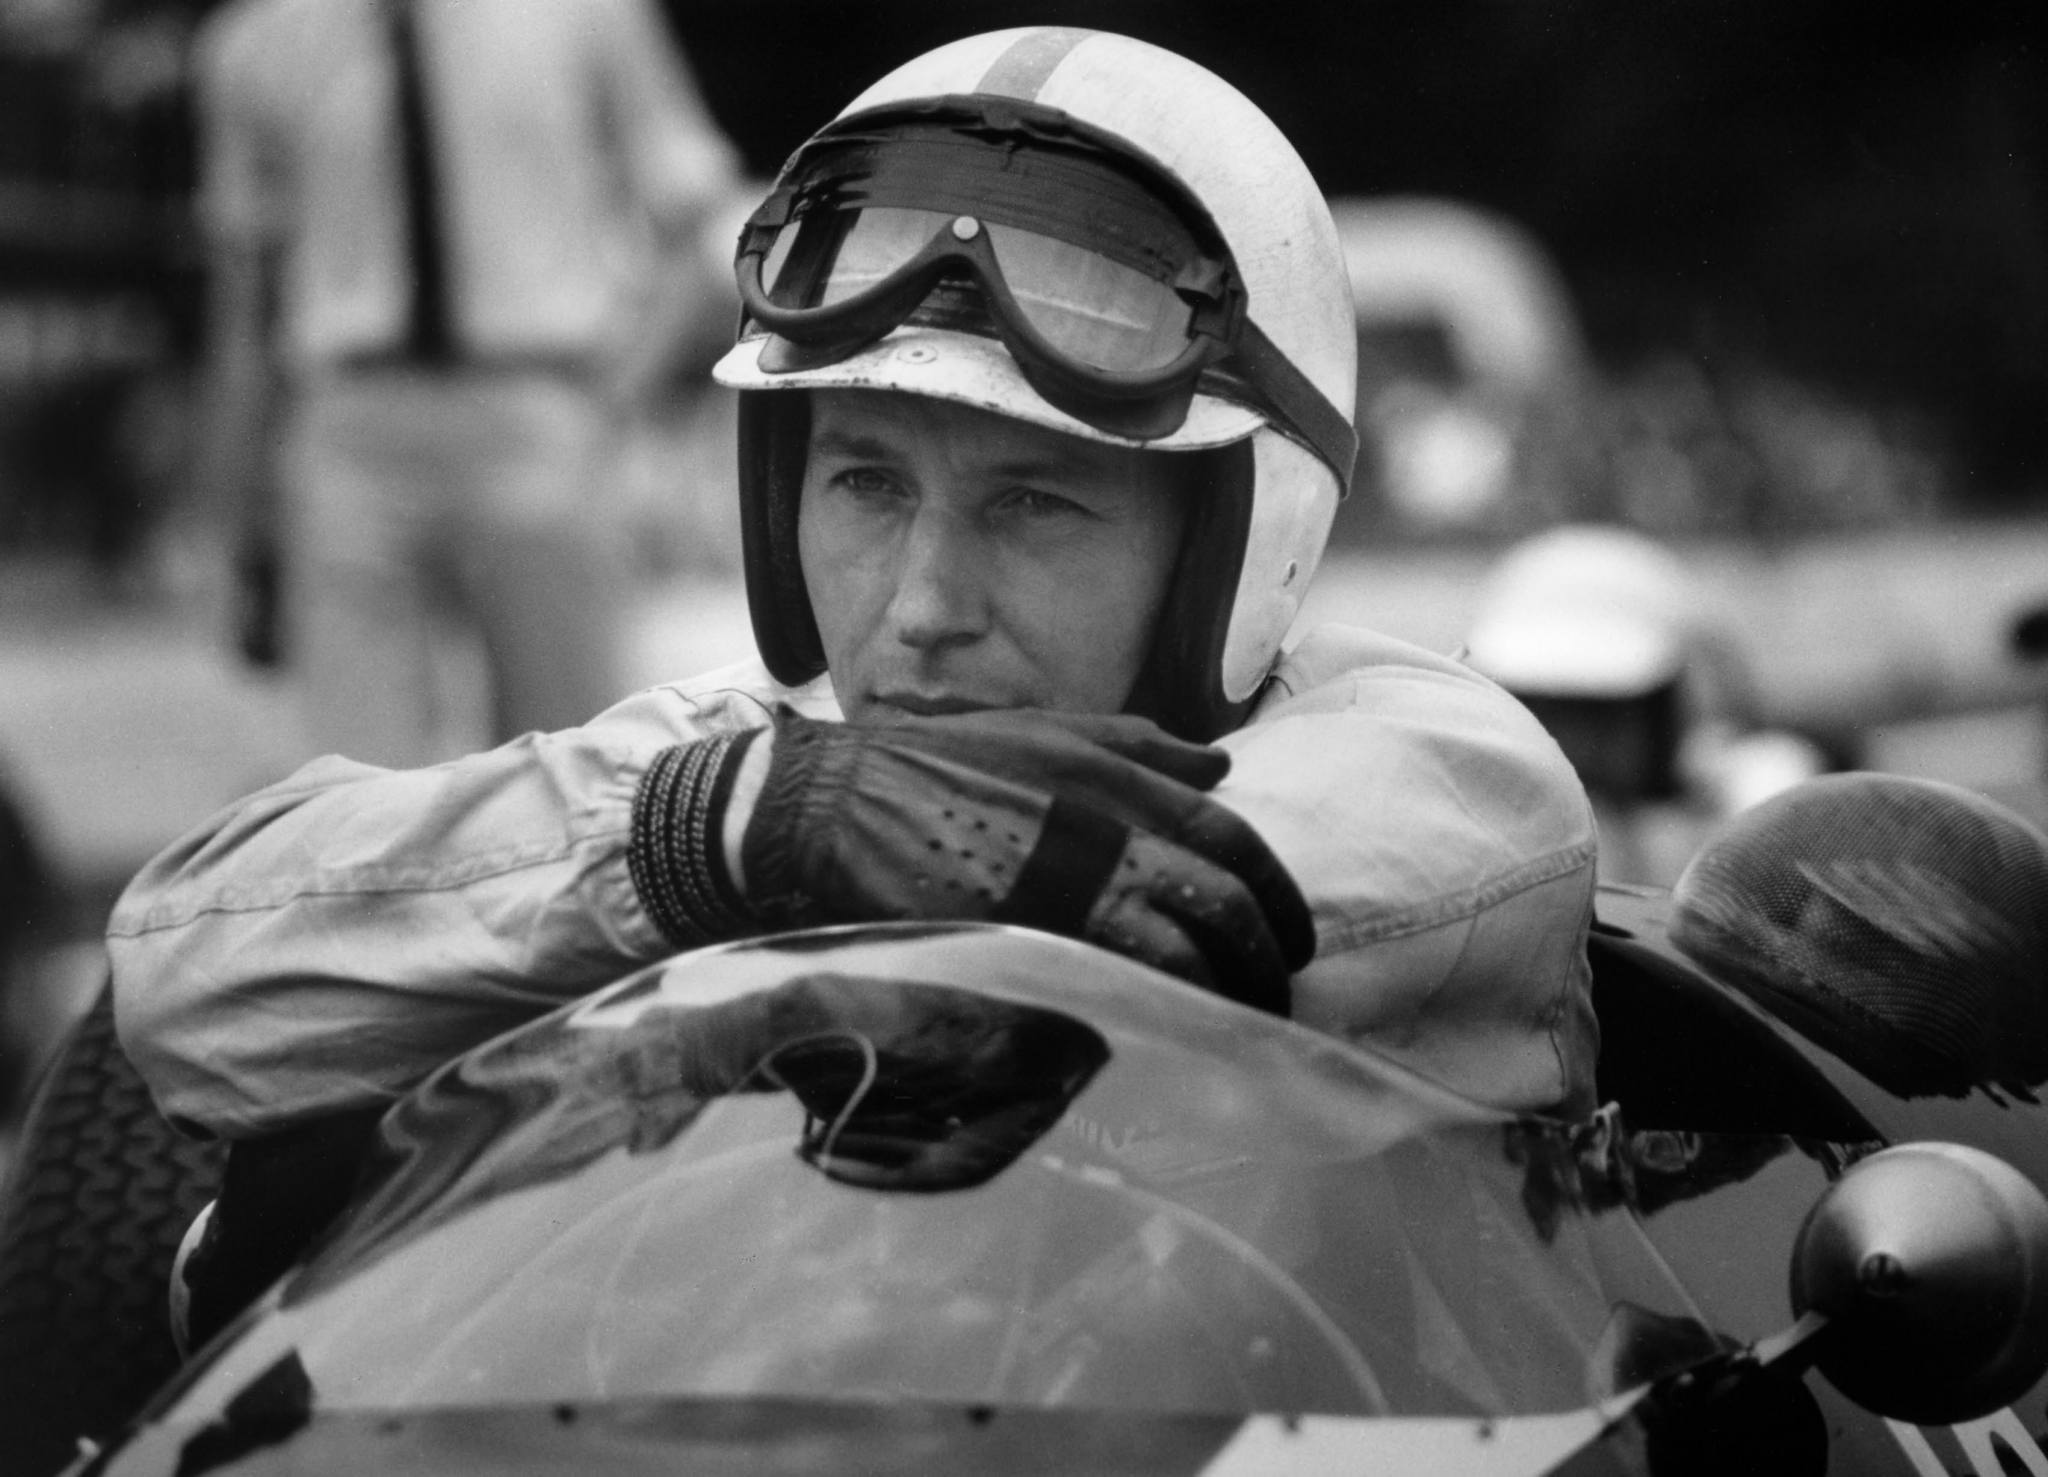 john-surtees-my-incredible-life-on-two-and-four-wheels-book-announced_3.jpg